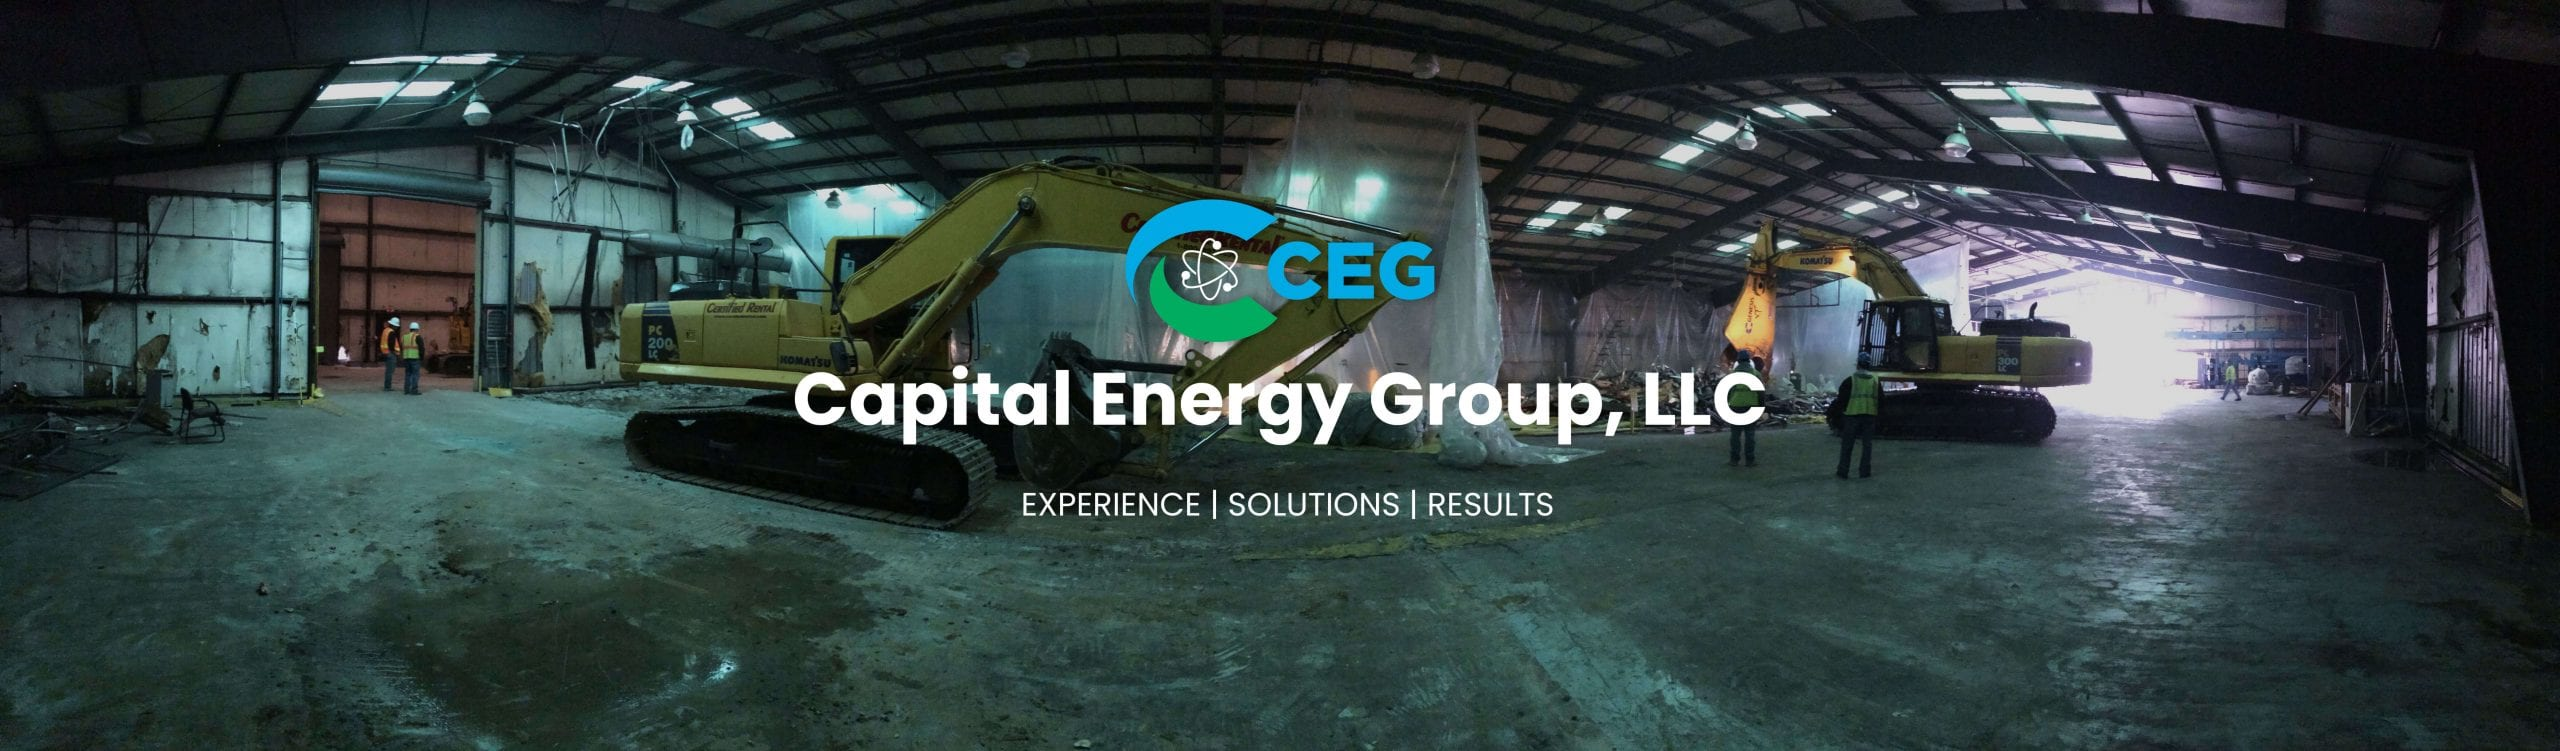 Capital Energy Group, LLC | Demolition, Construction, Remediation